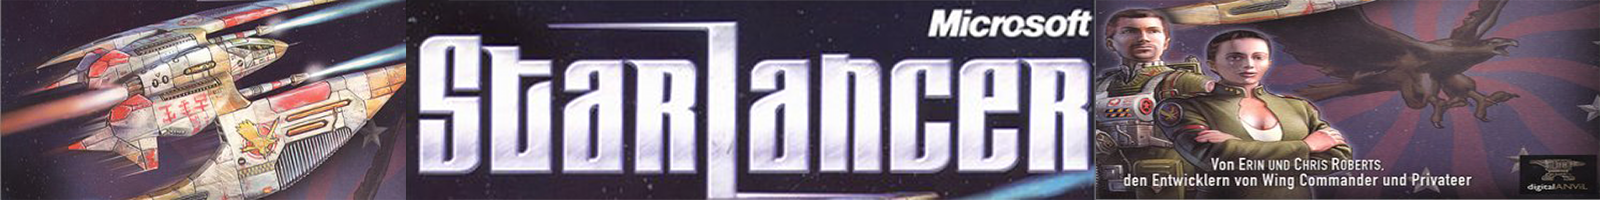 large.STARLANCER_HQBANNER.png.8a1106c218